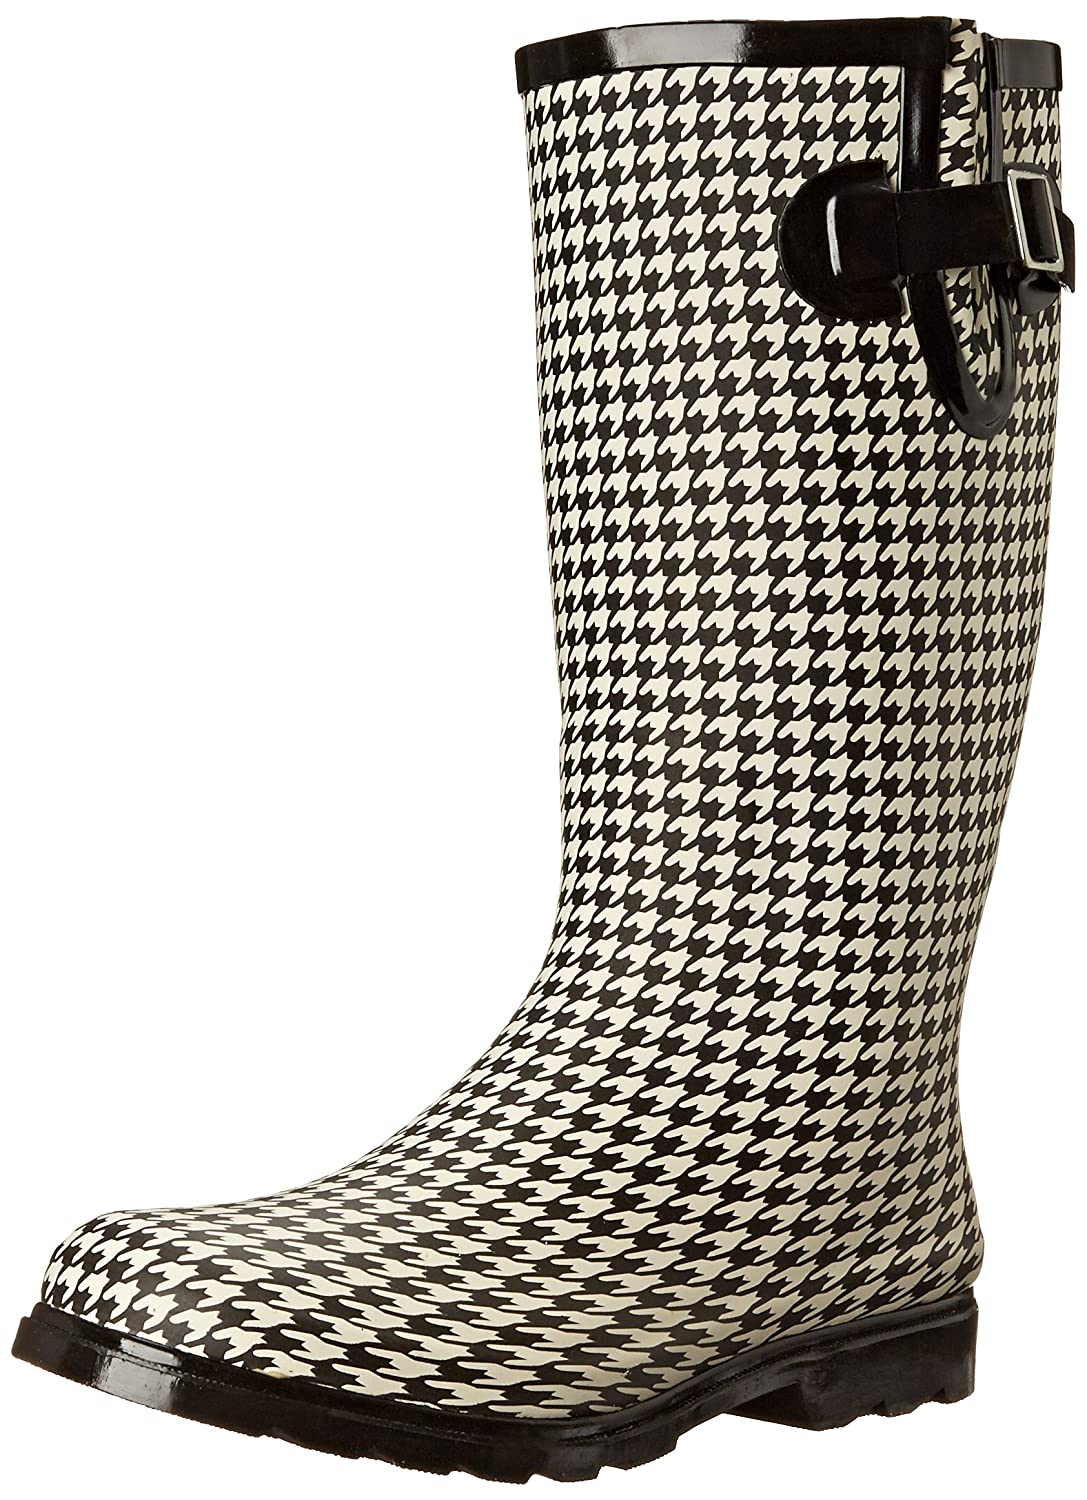 Nomad Women's Puddles Rain Boot B00T9QQQQ8 6 B(M) US|Black/White Hounds Tooth